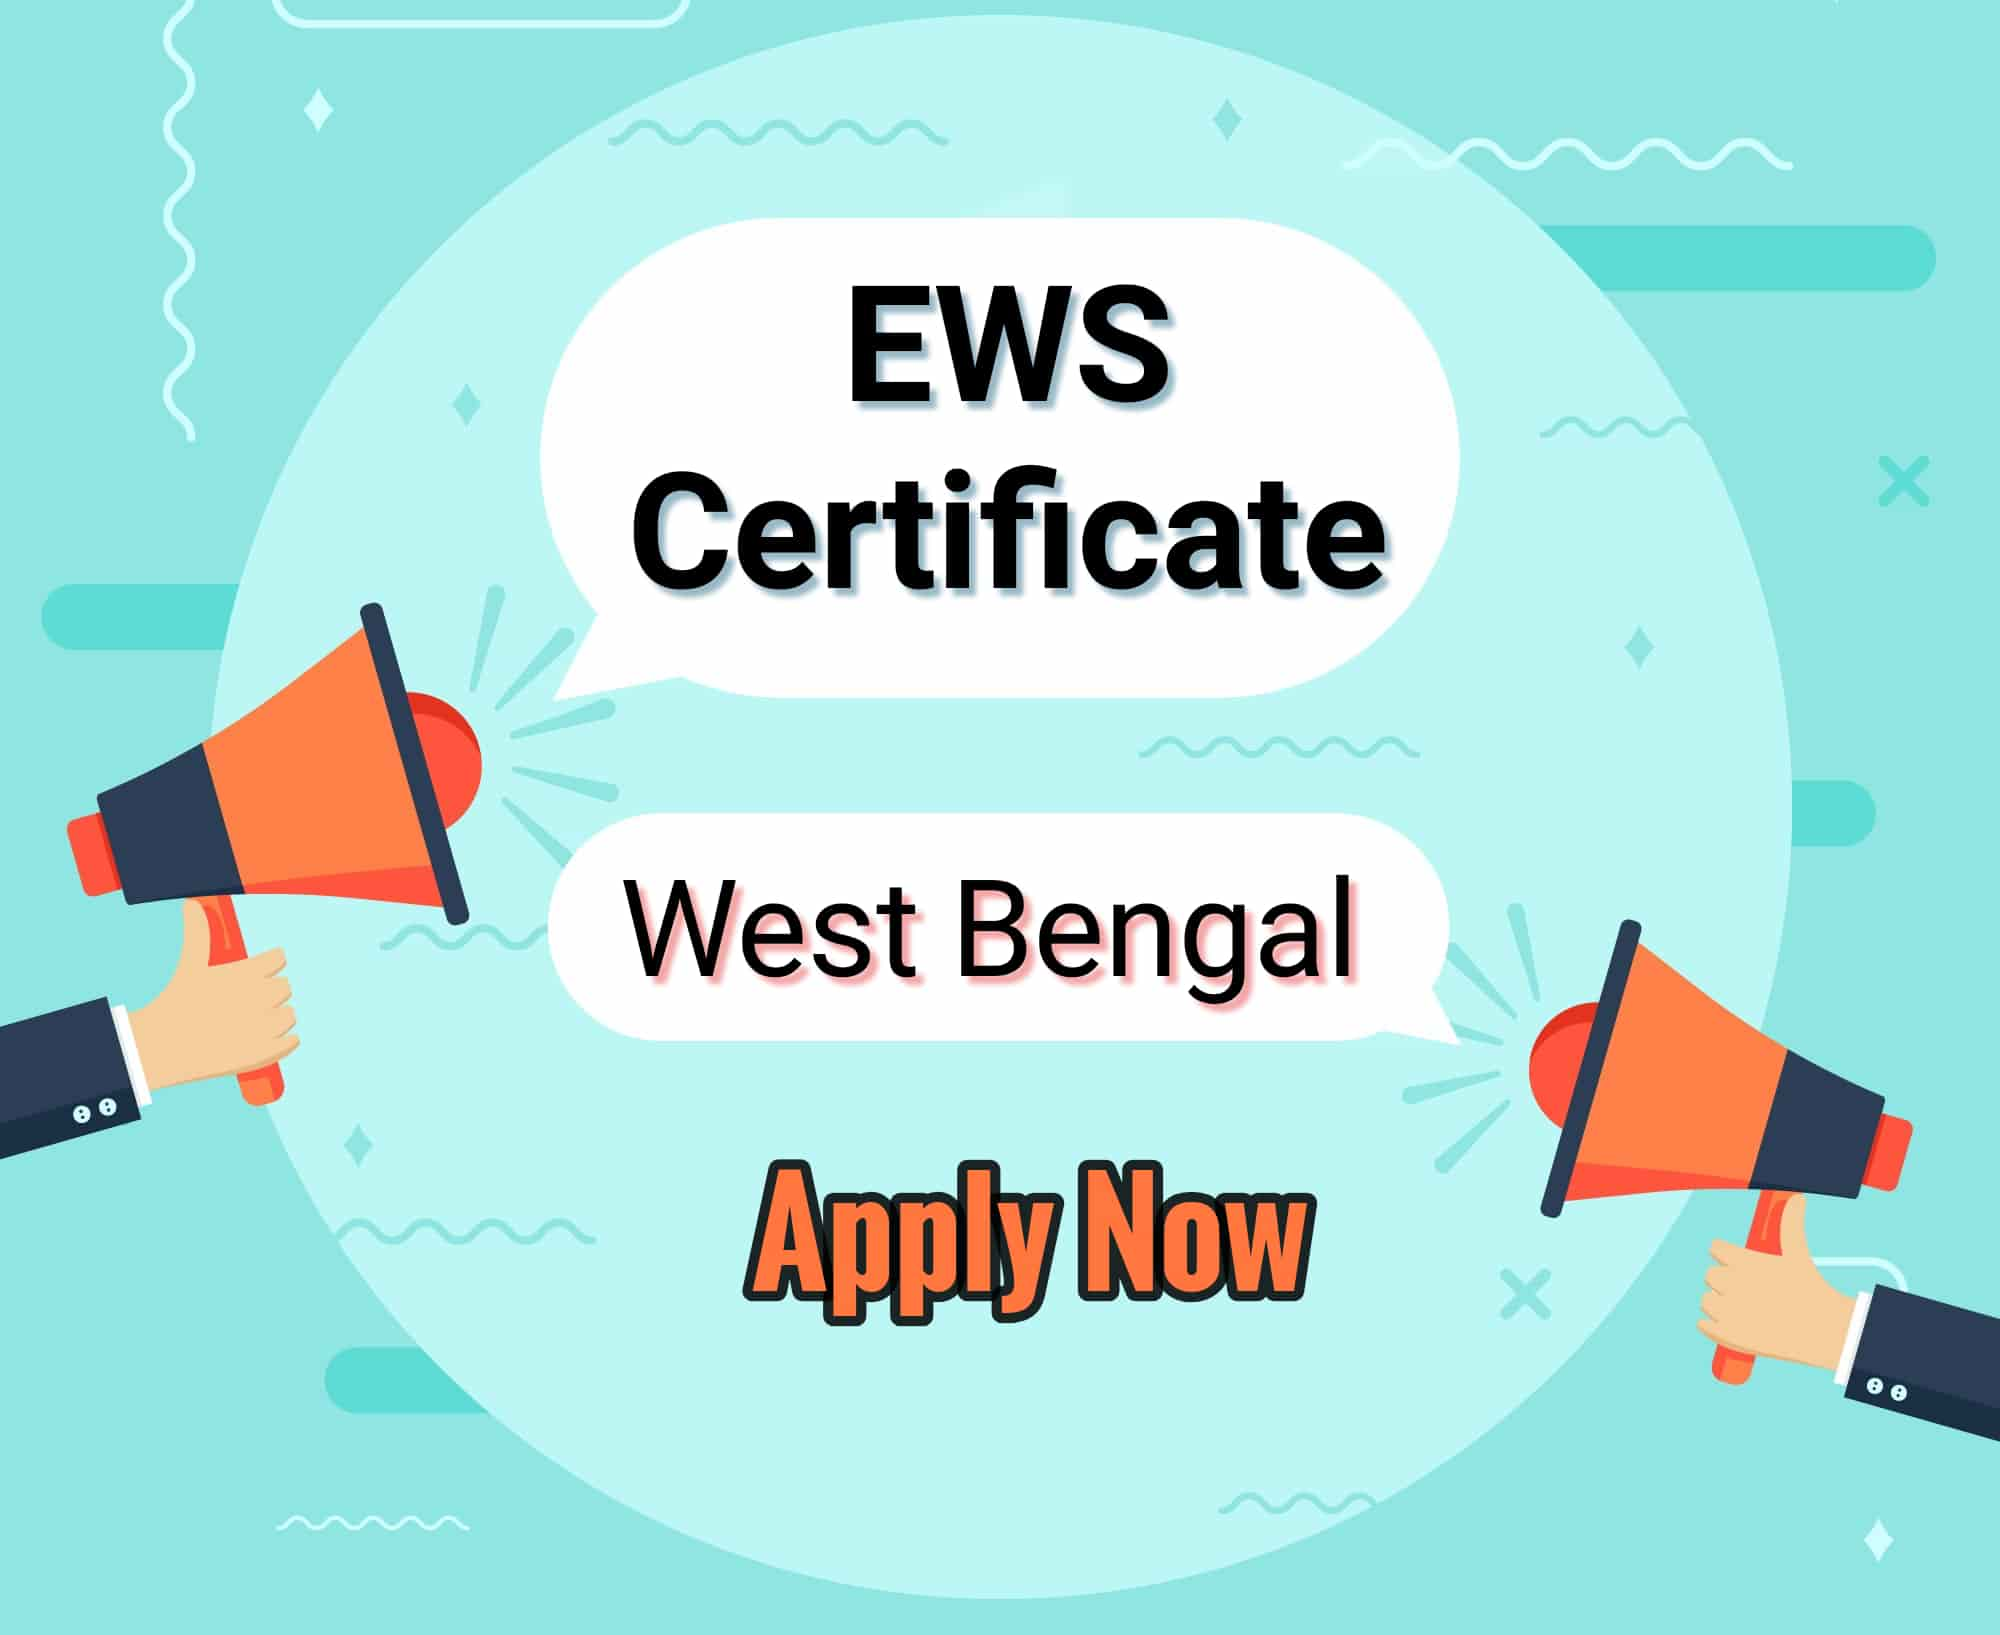 EWS Certificate West Bengal Application